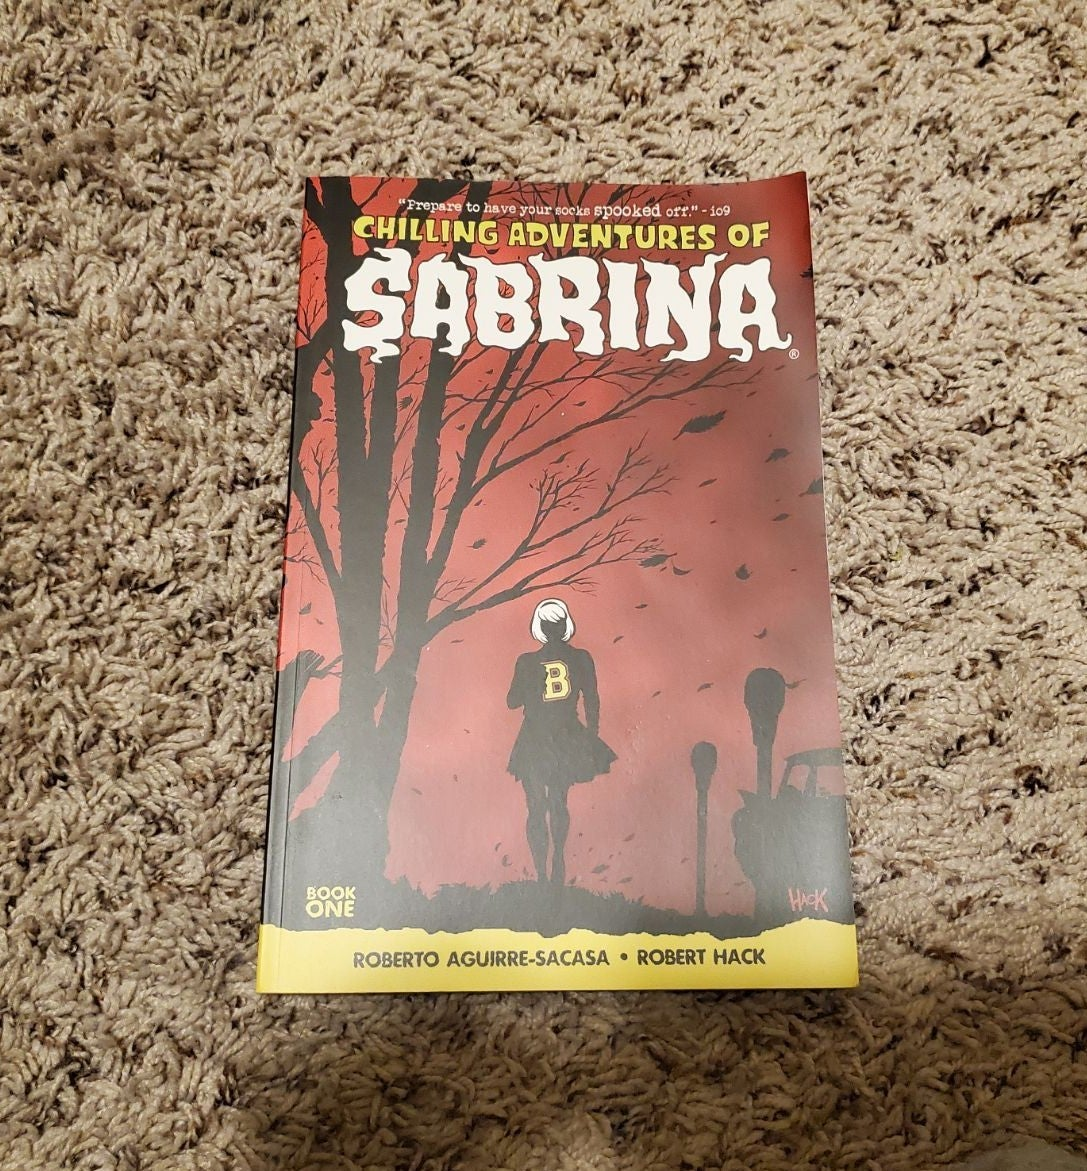 The chilling Adventures of sabrina comic